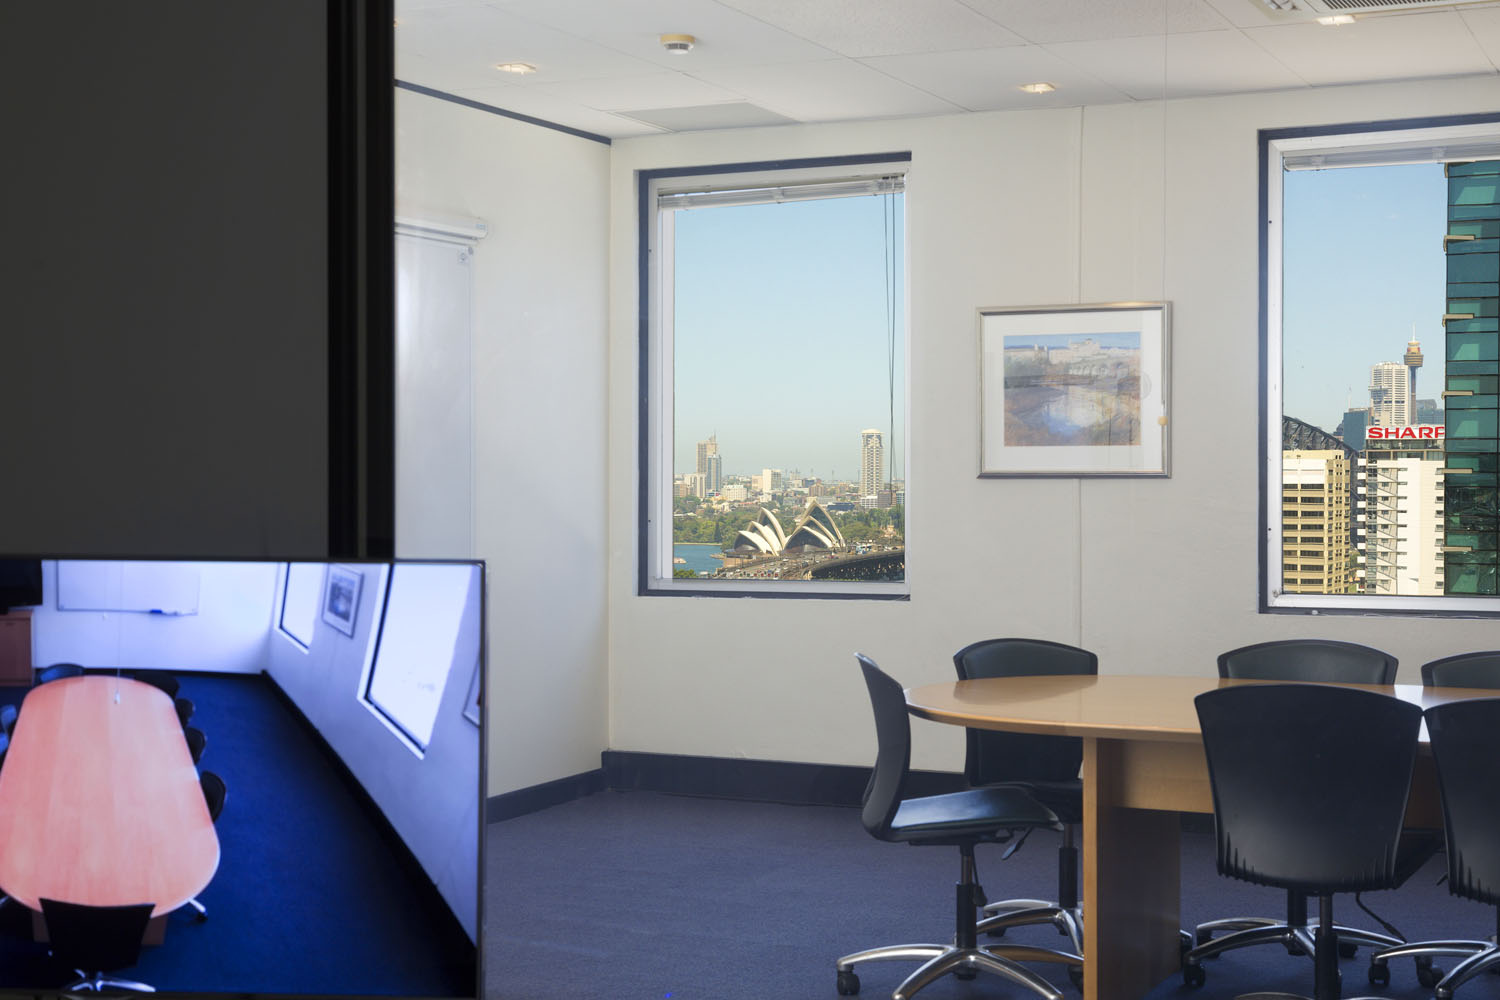 Architectural photography, real estate photography,Event photography, corporate photography, corporate headshots